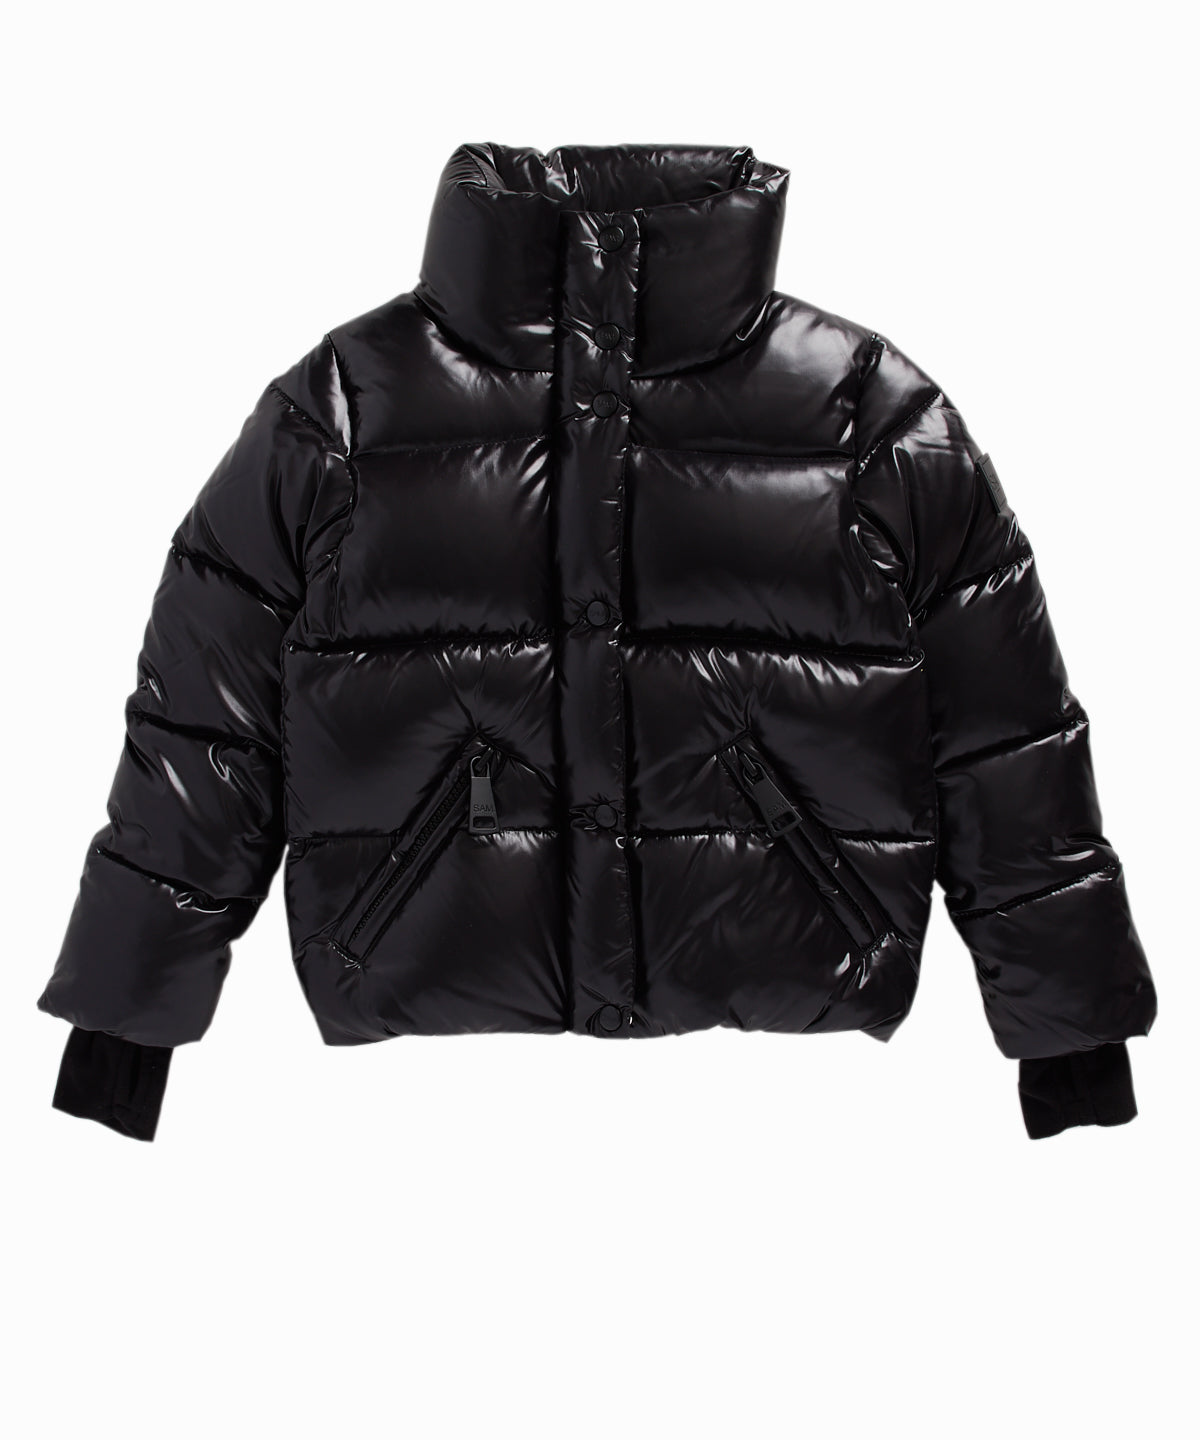 Andi Black Puffer Jacket